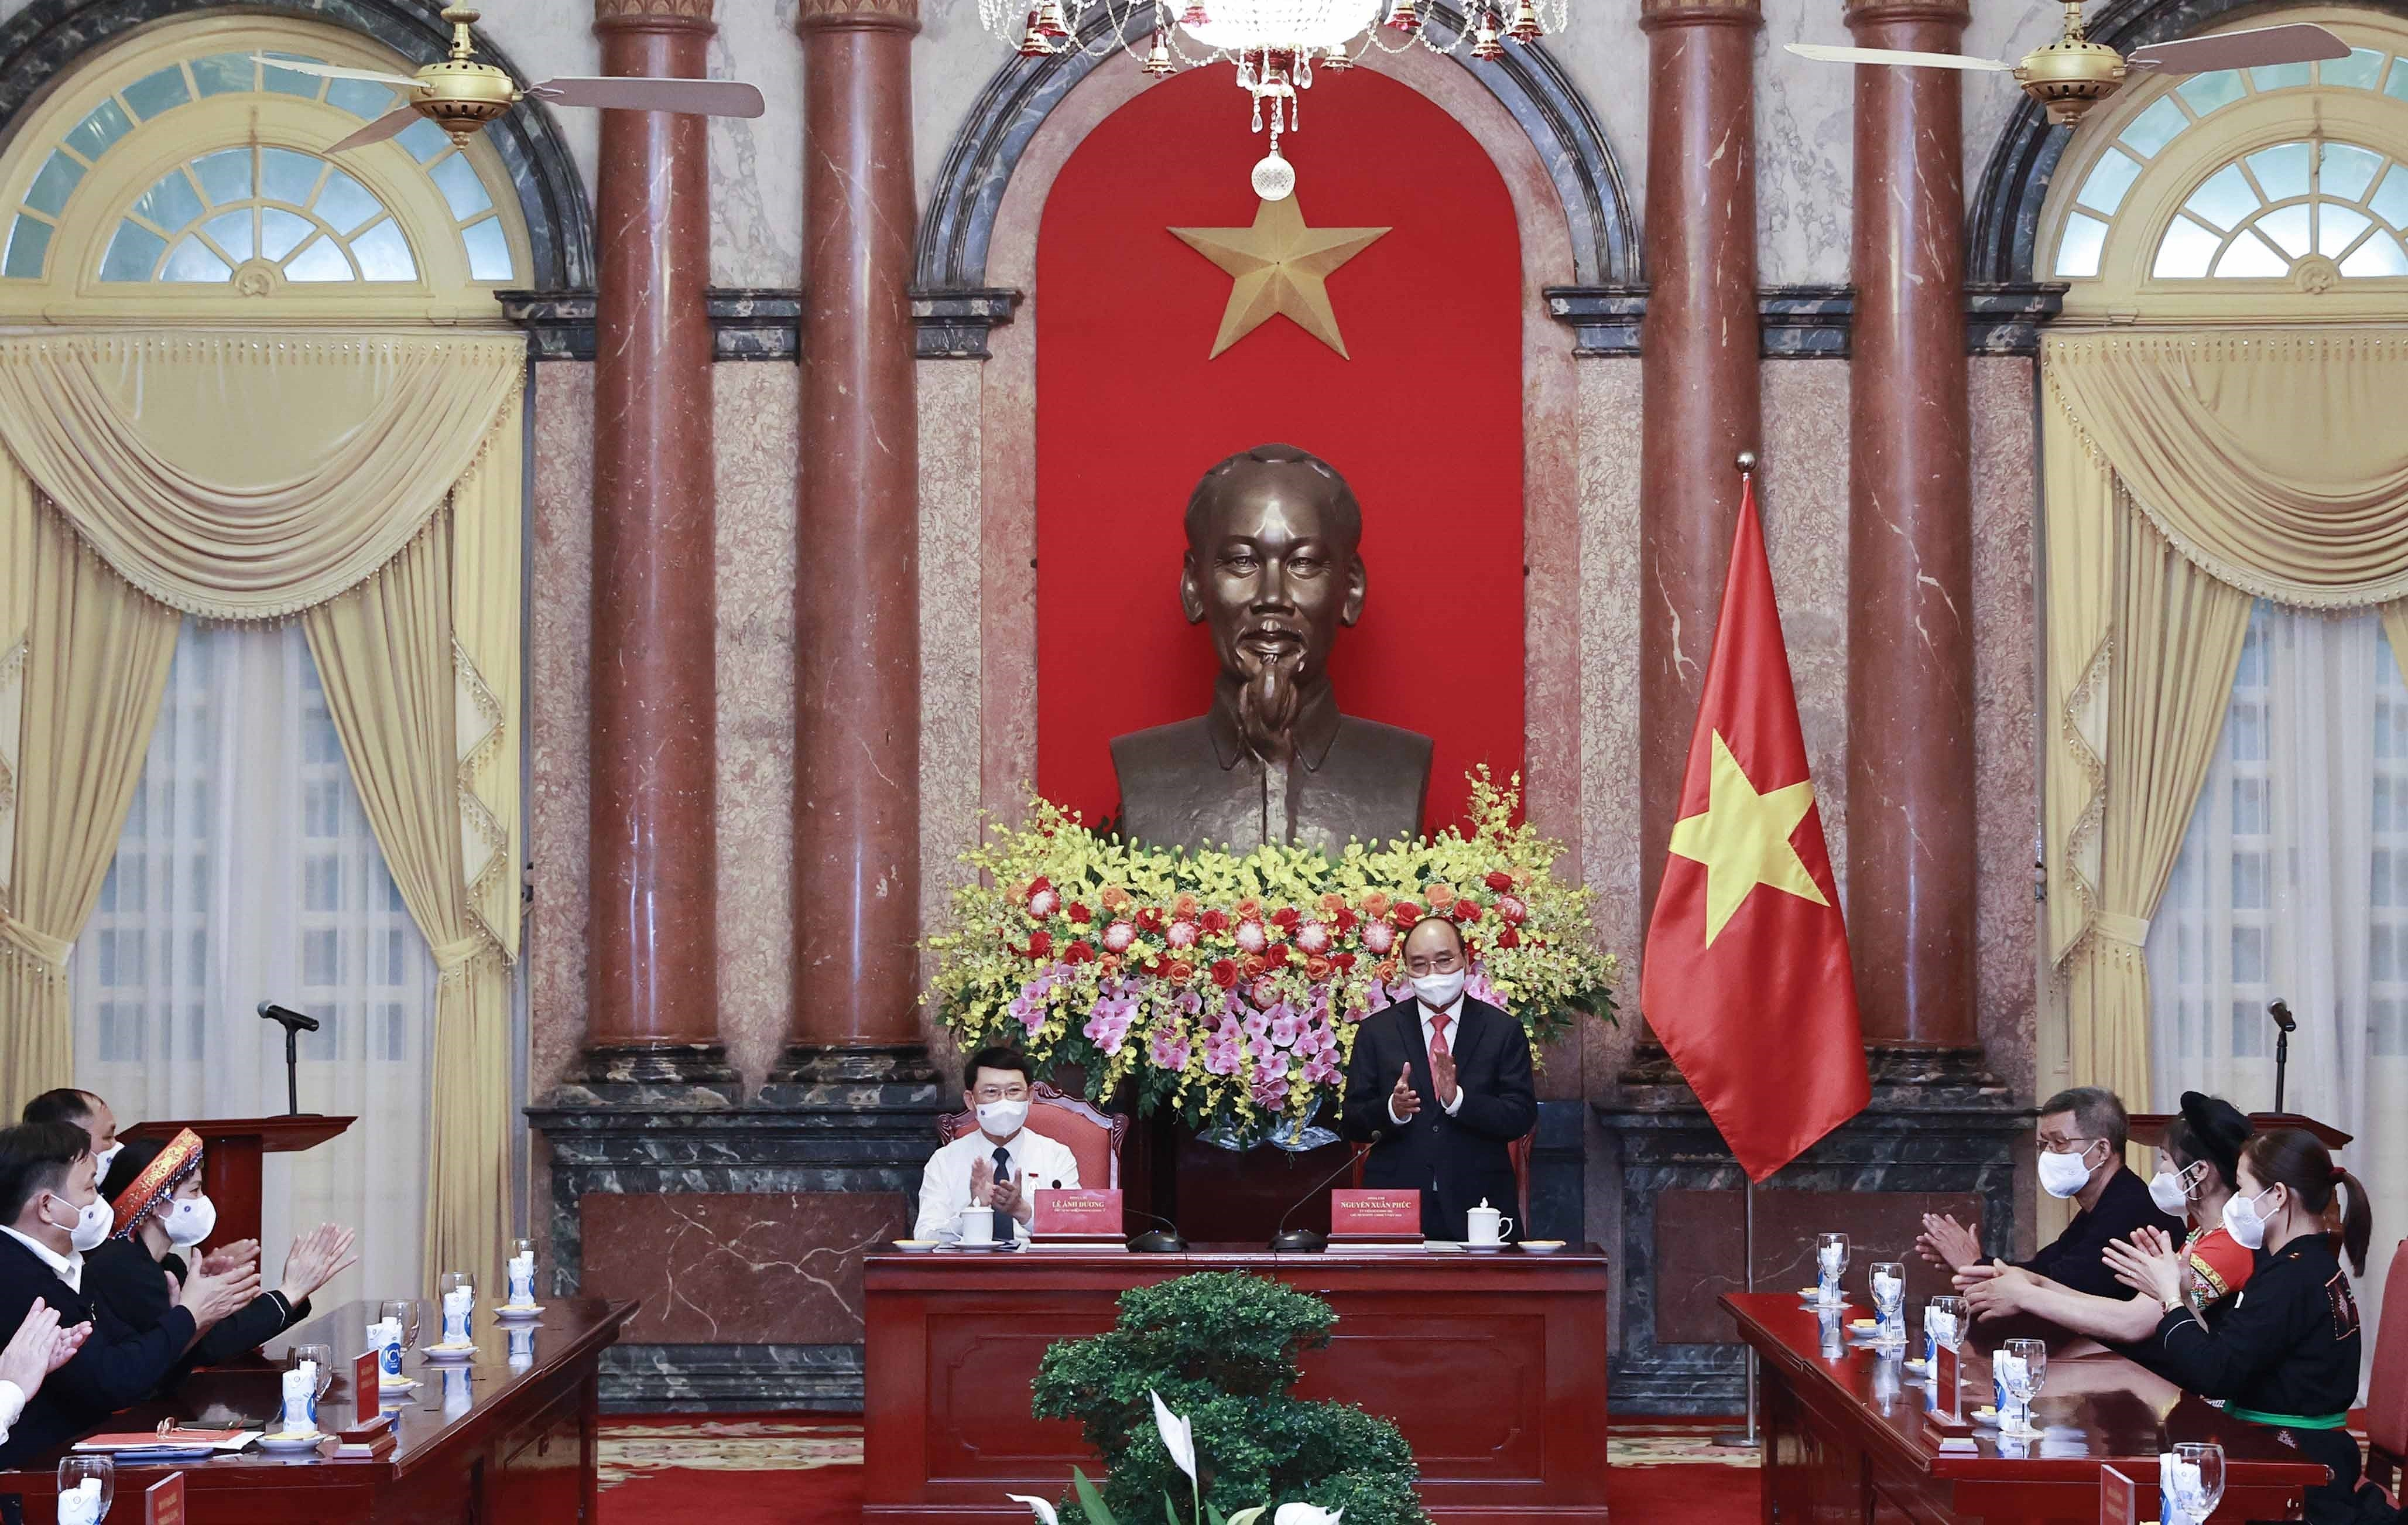 State President meets with ethnic delegates from Bac Giang hinh anh 2